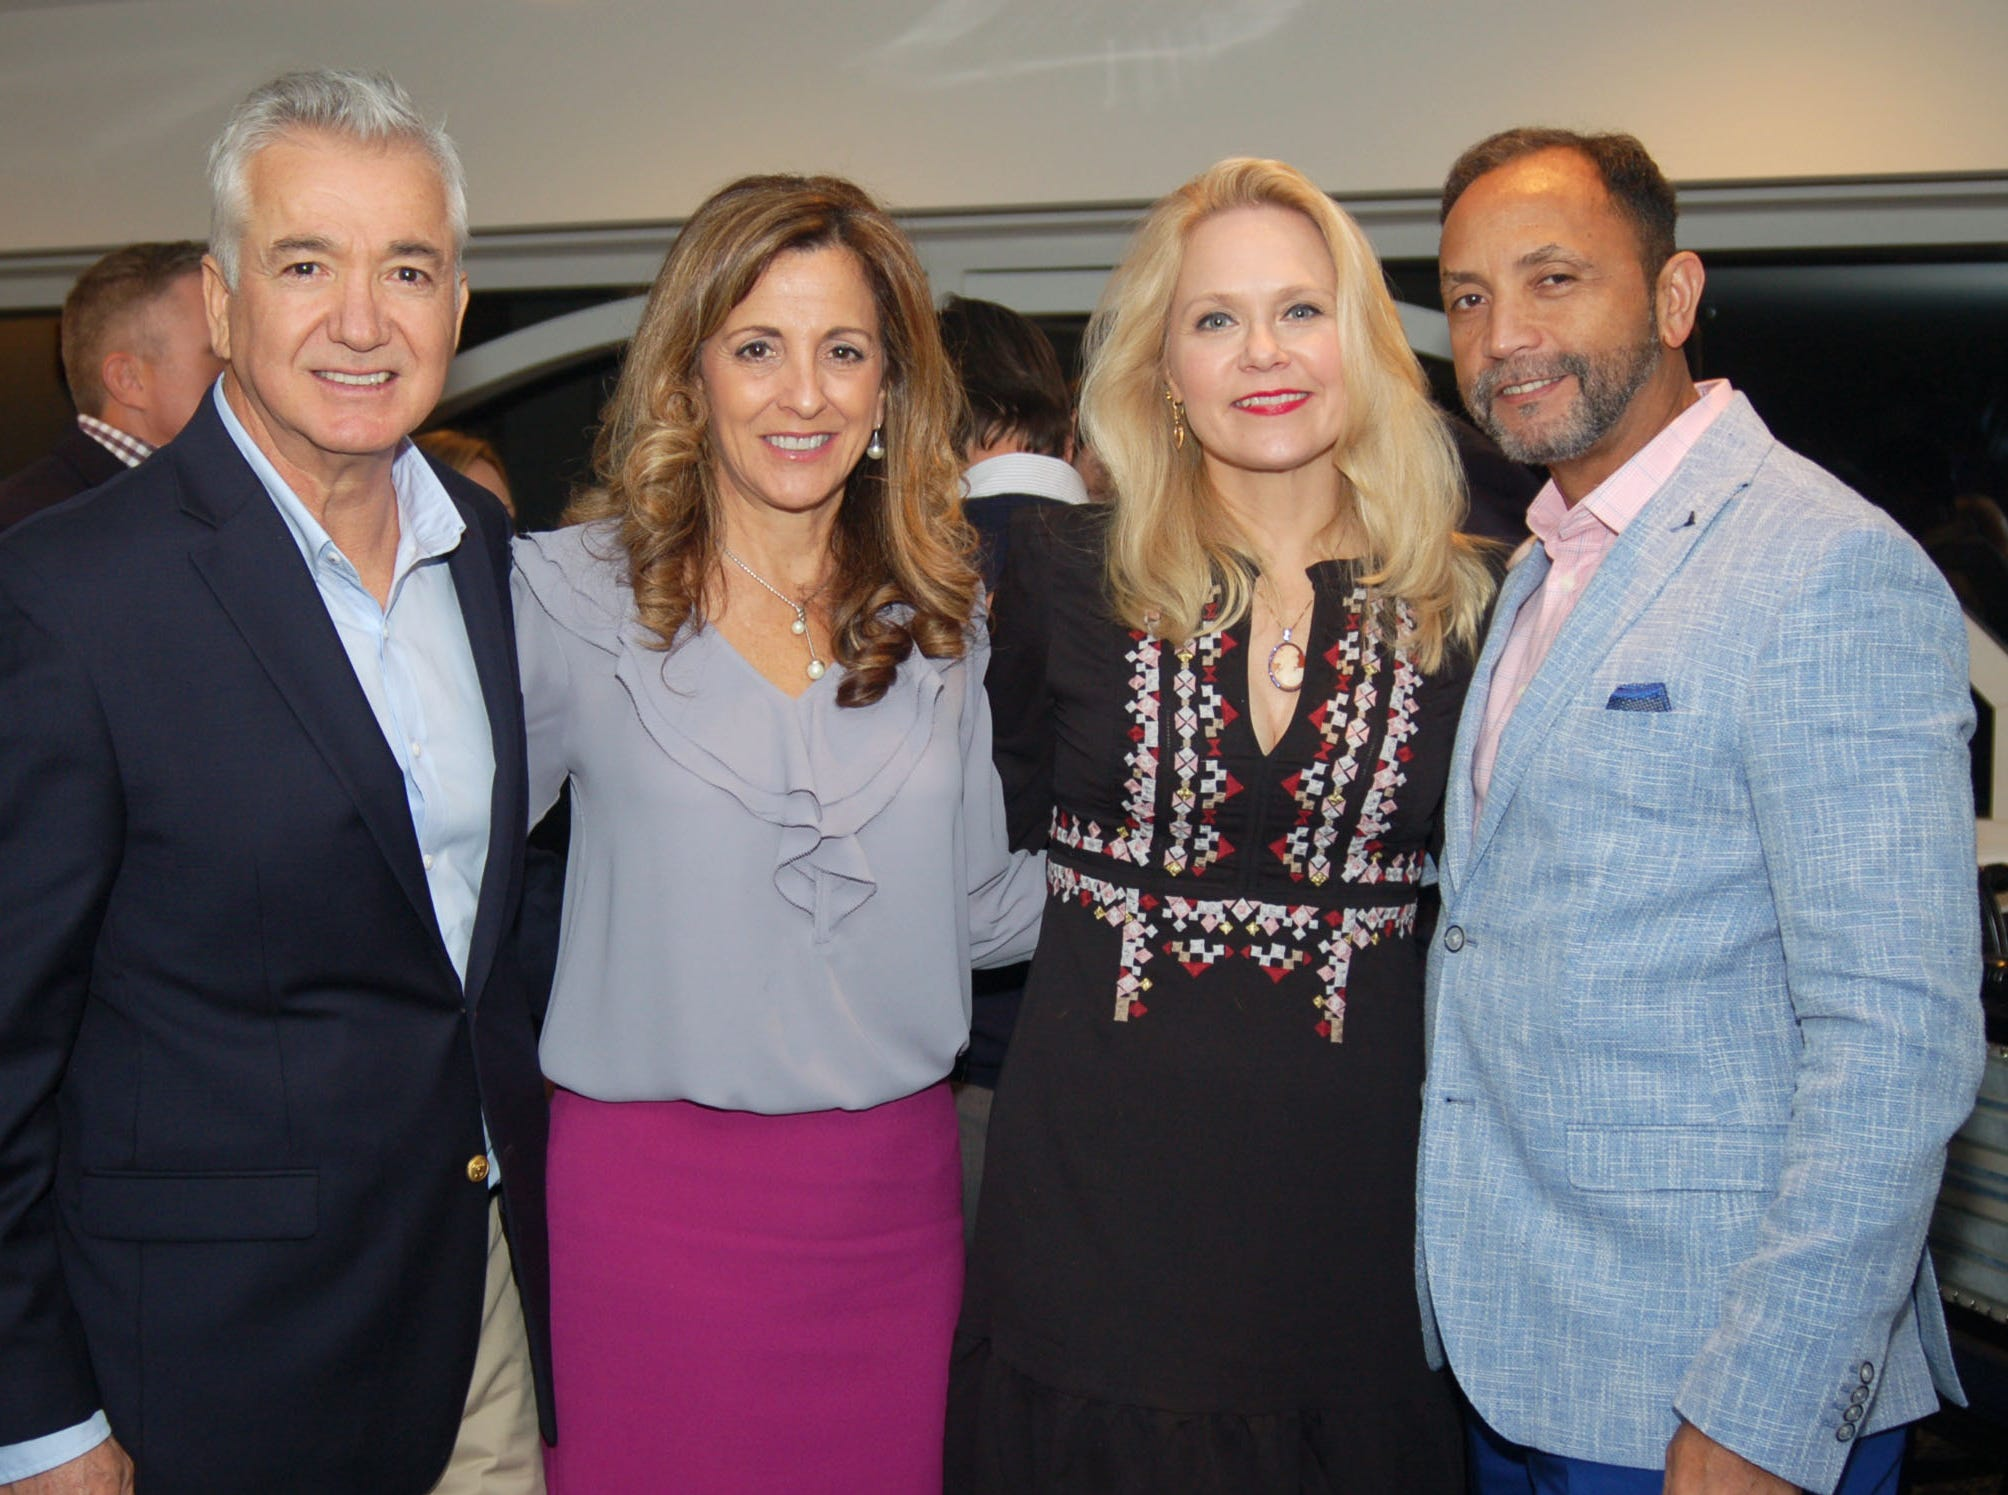 Ed and Judy Magalhaes, left, Liv Vesely and Jerson Diaz at Admirals Cove in Jupiter for the VIP kick-off reception for the American Cancer Society's 2019 Celestial Gala.